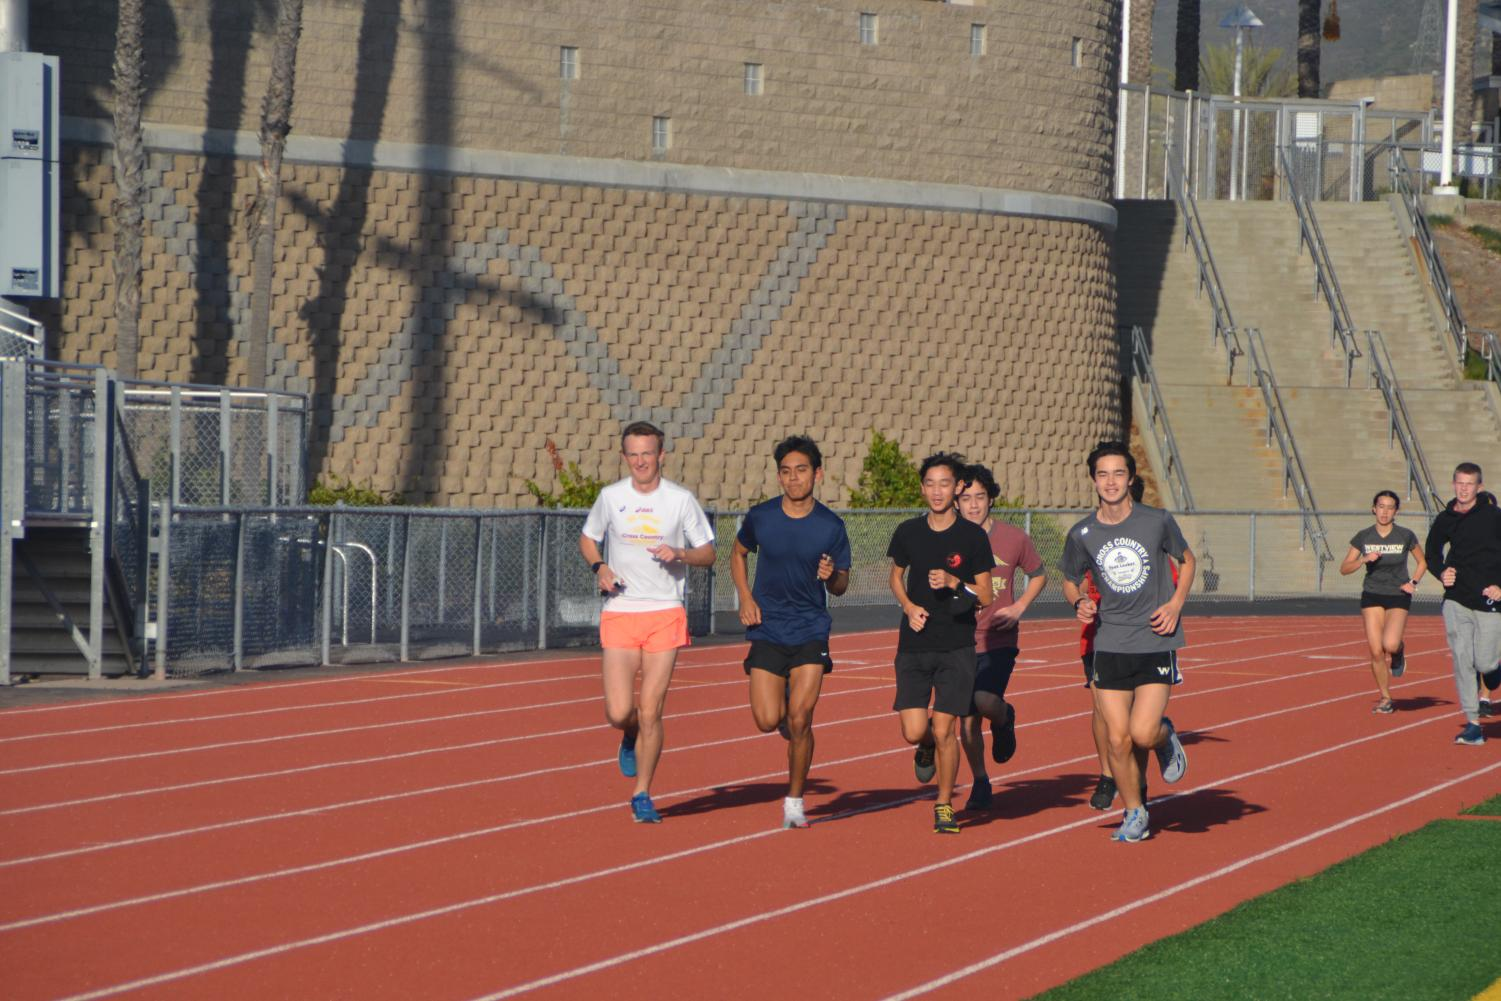 Drew Cottingham (12), Lara, Ho, and Nathan Leroy (11) lead the team around the track. Photo by Matthew Flores